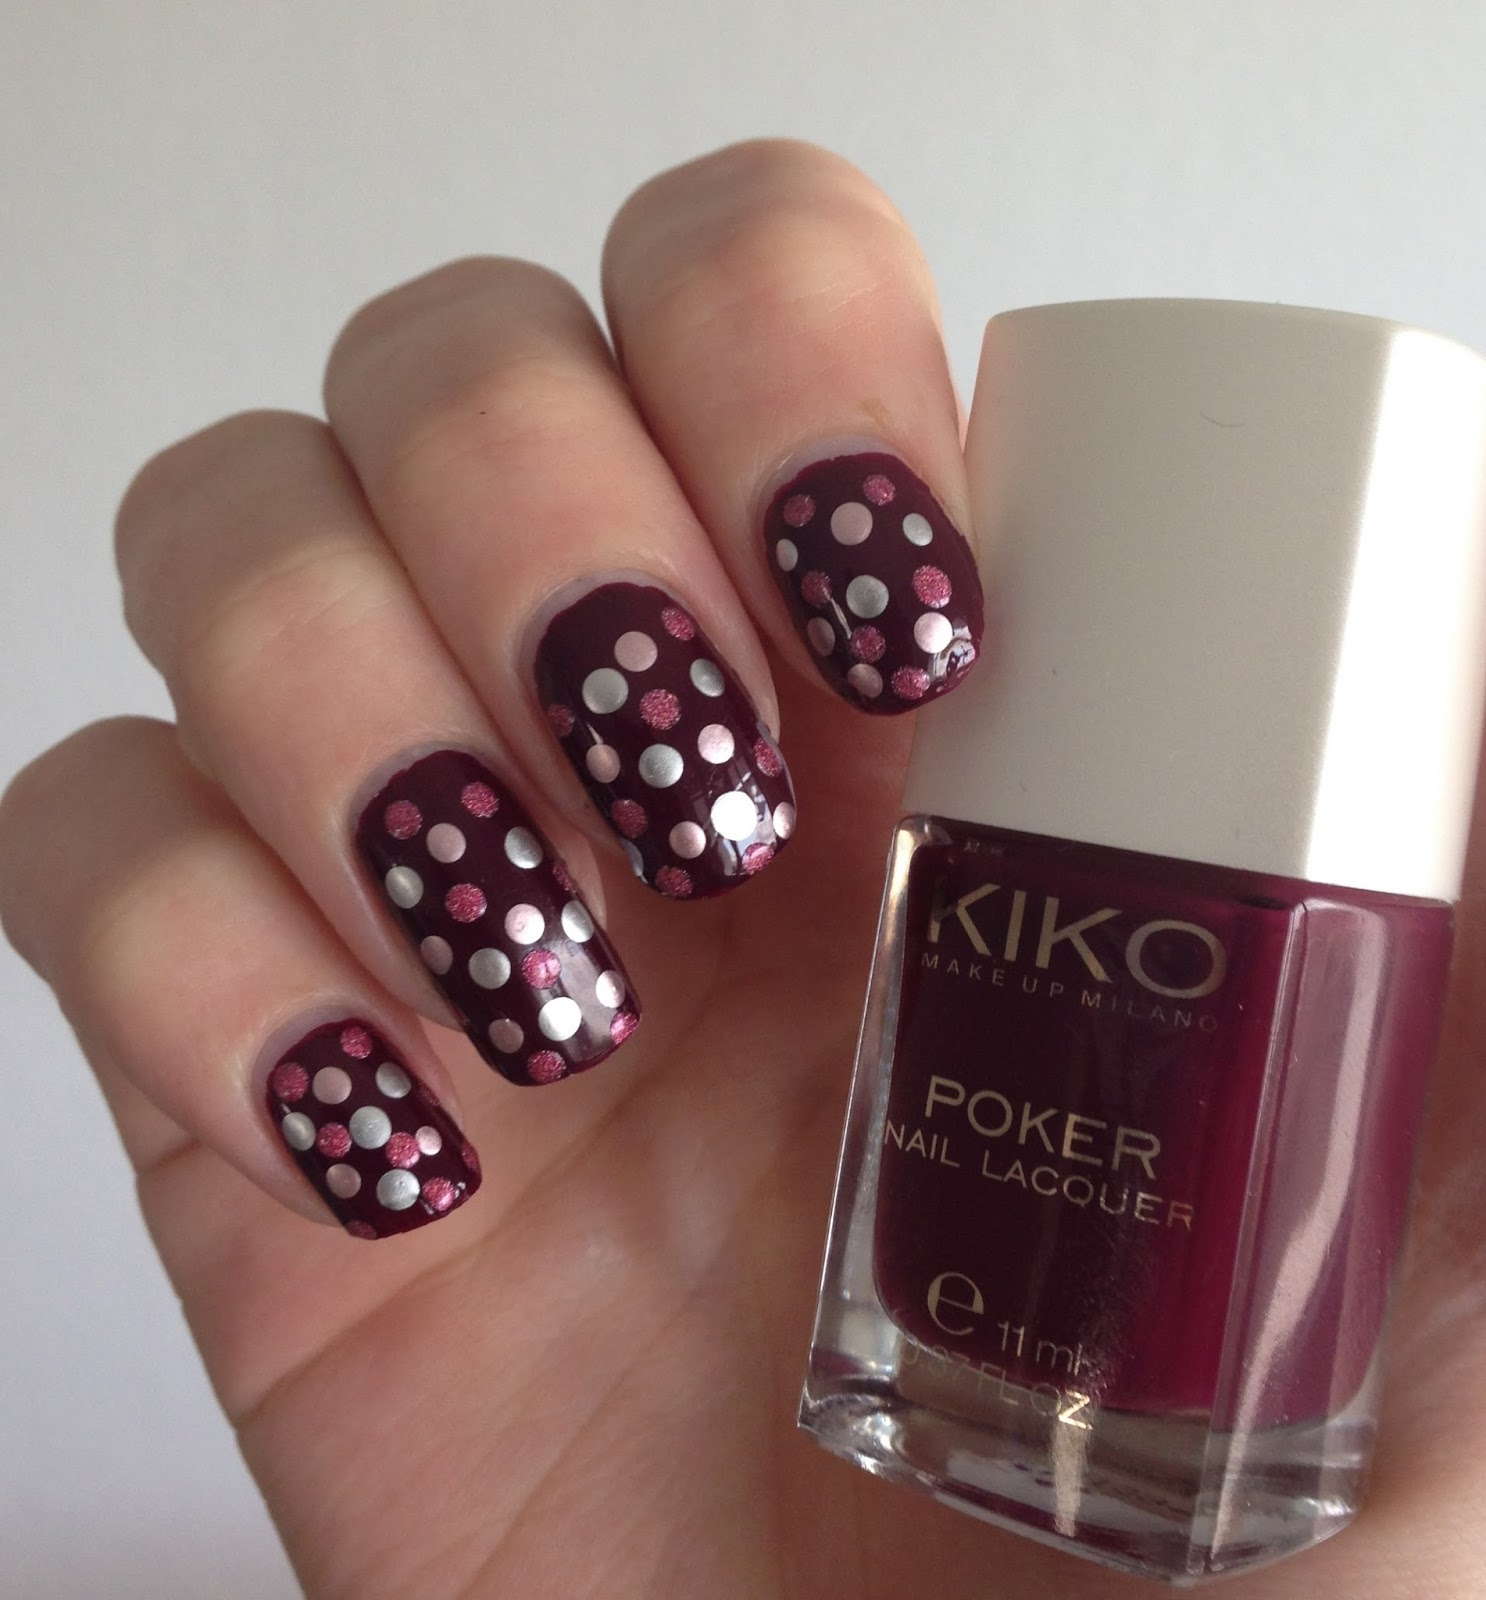 kiko nails 04 poker